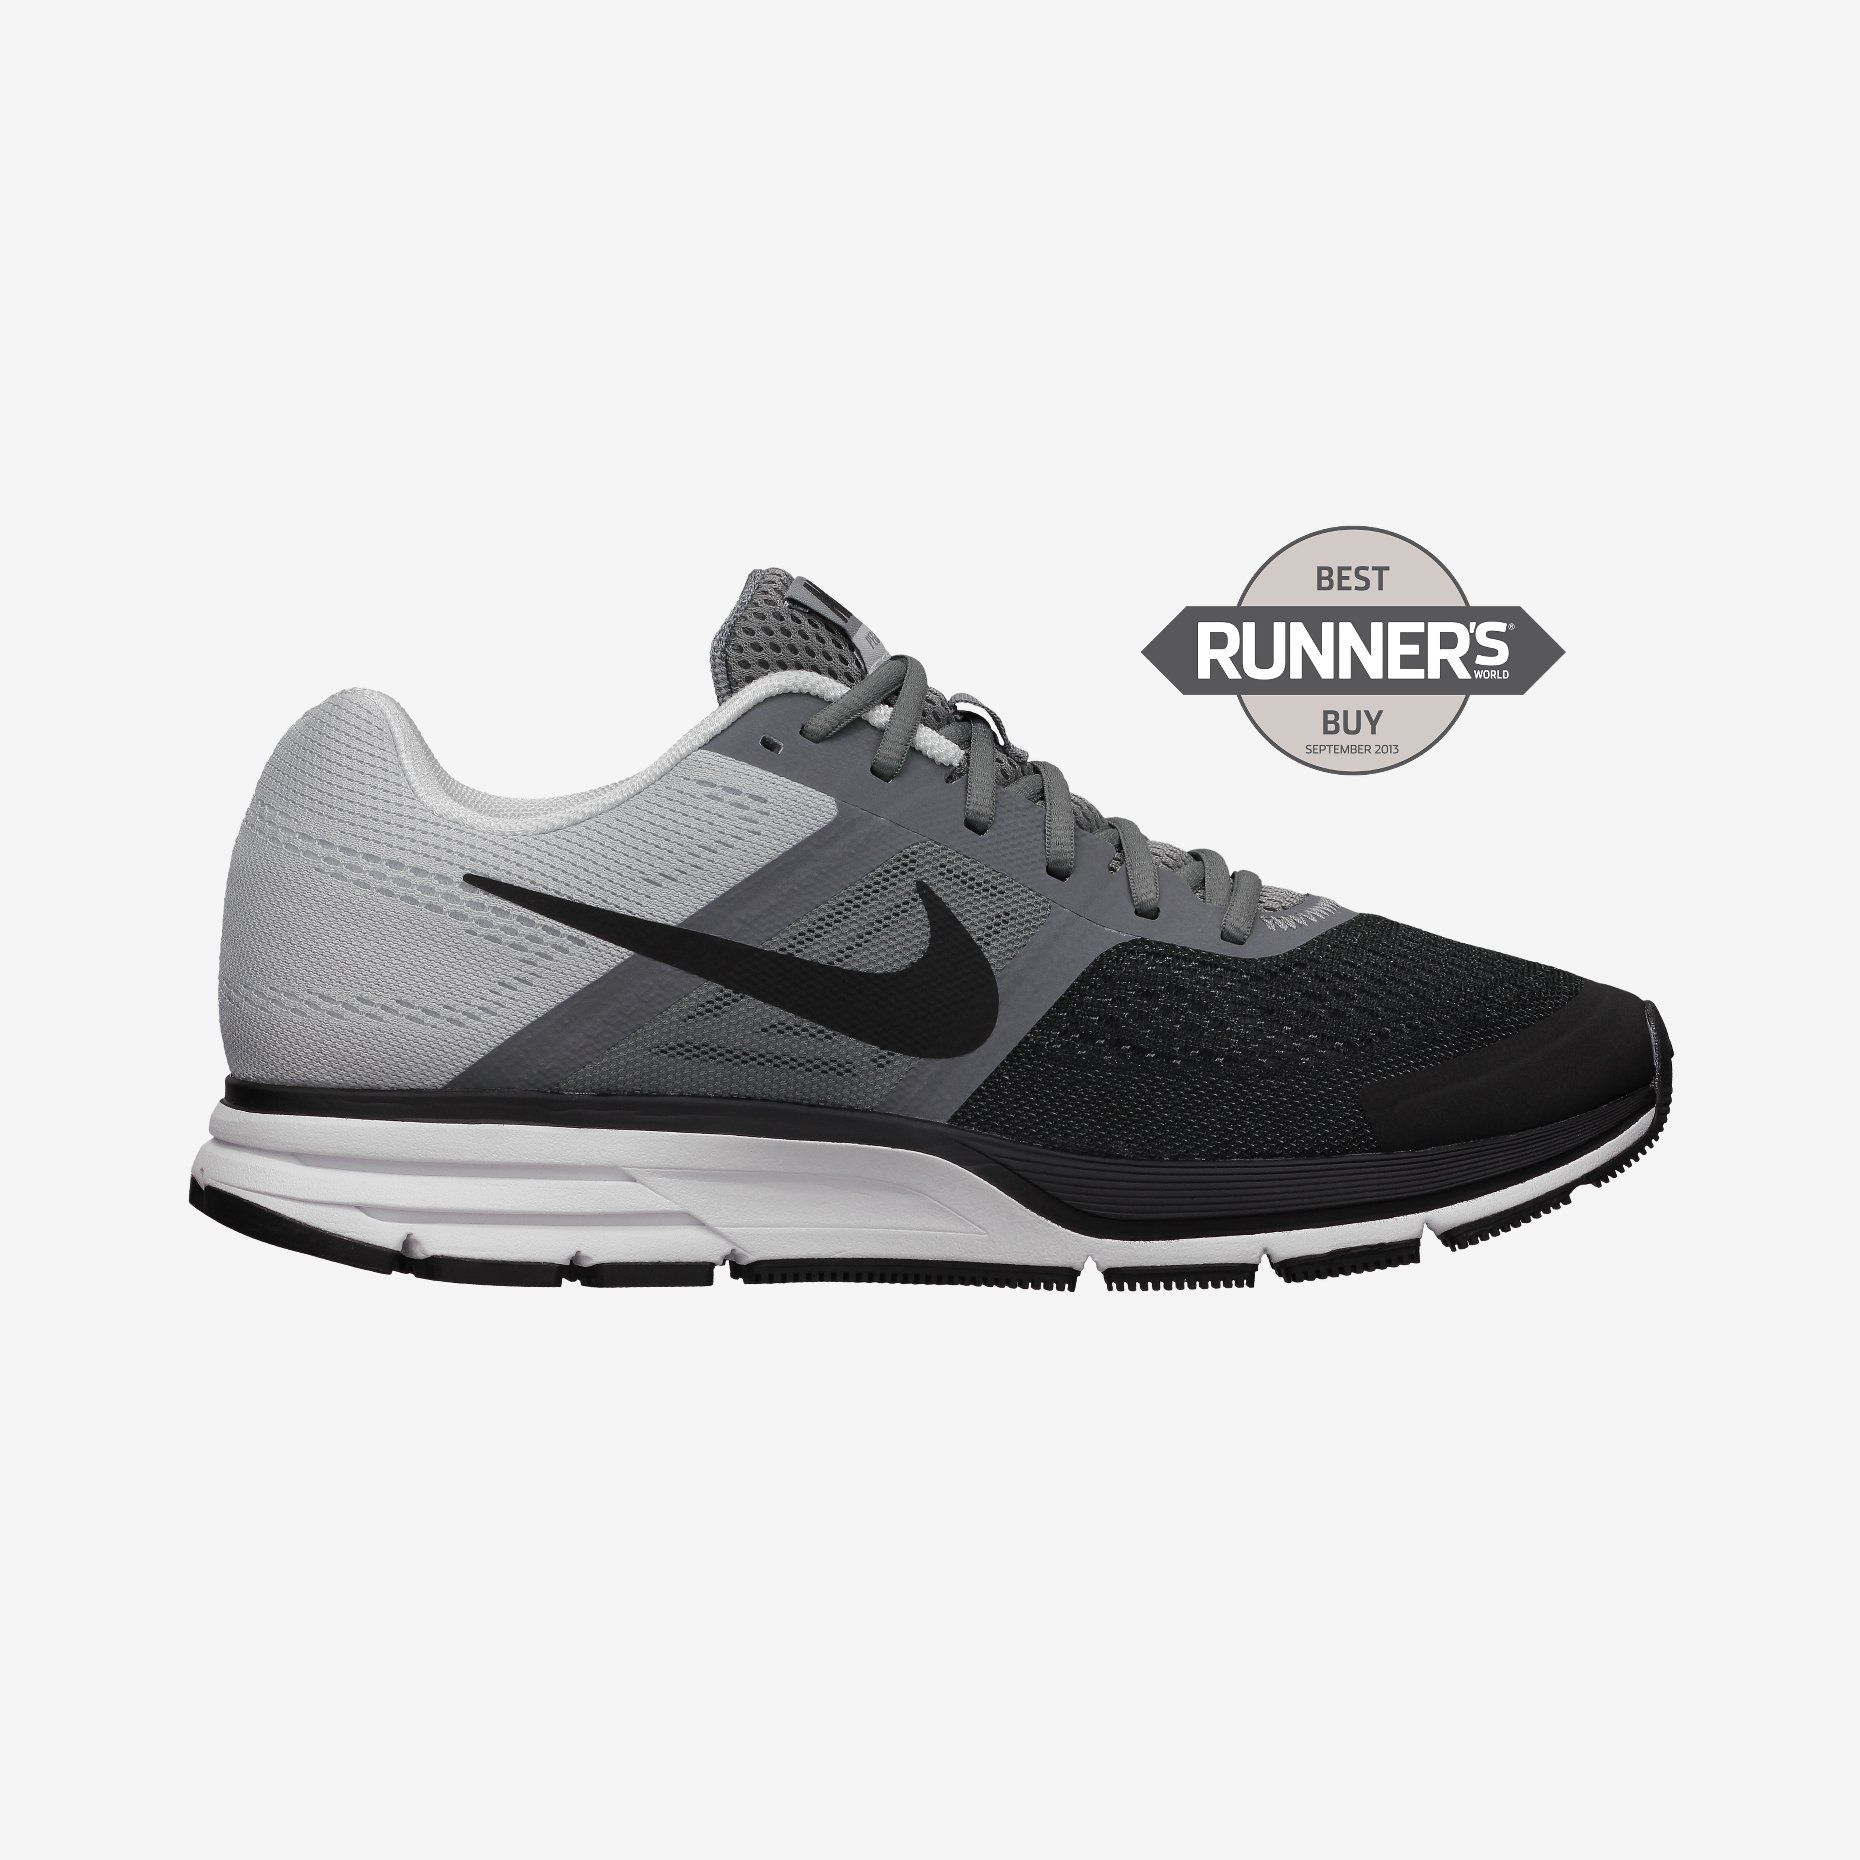 reputable site e159c 2689a Nike Store. Nike Air Pegasus 30 Men s Running Shoe